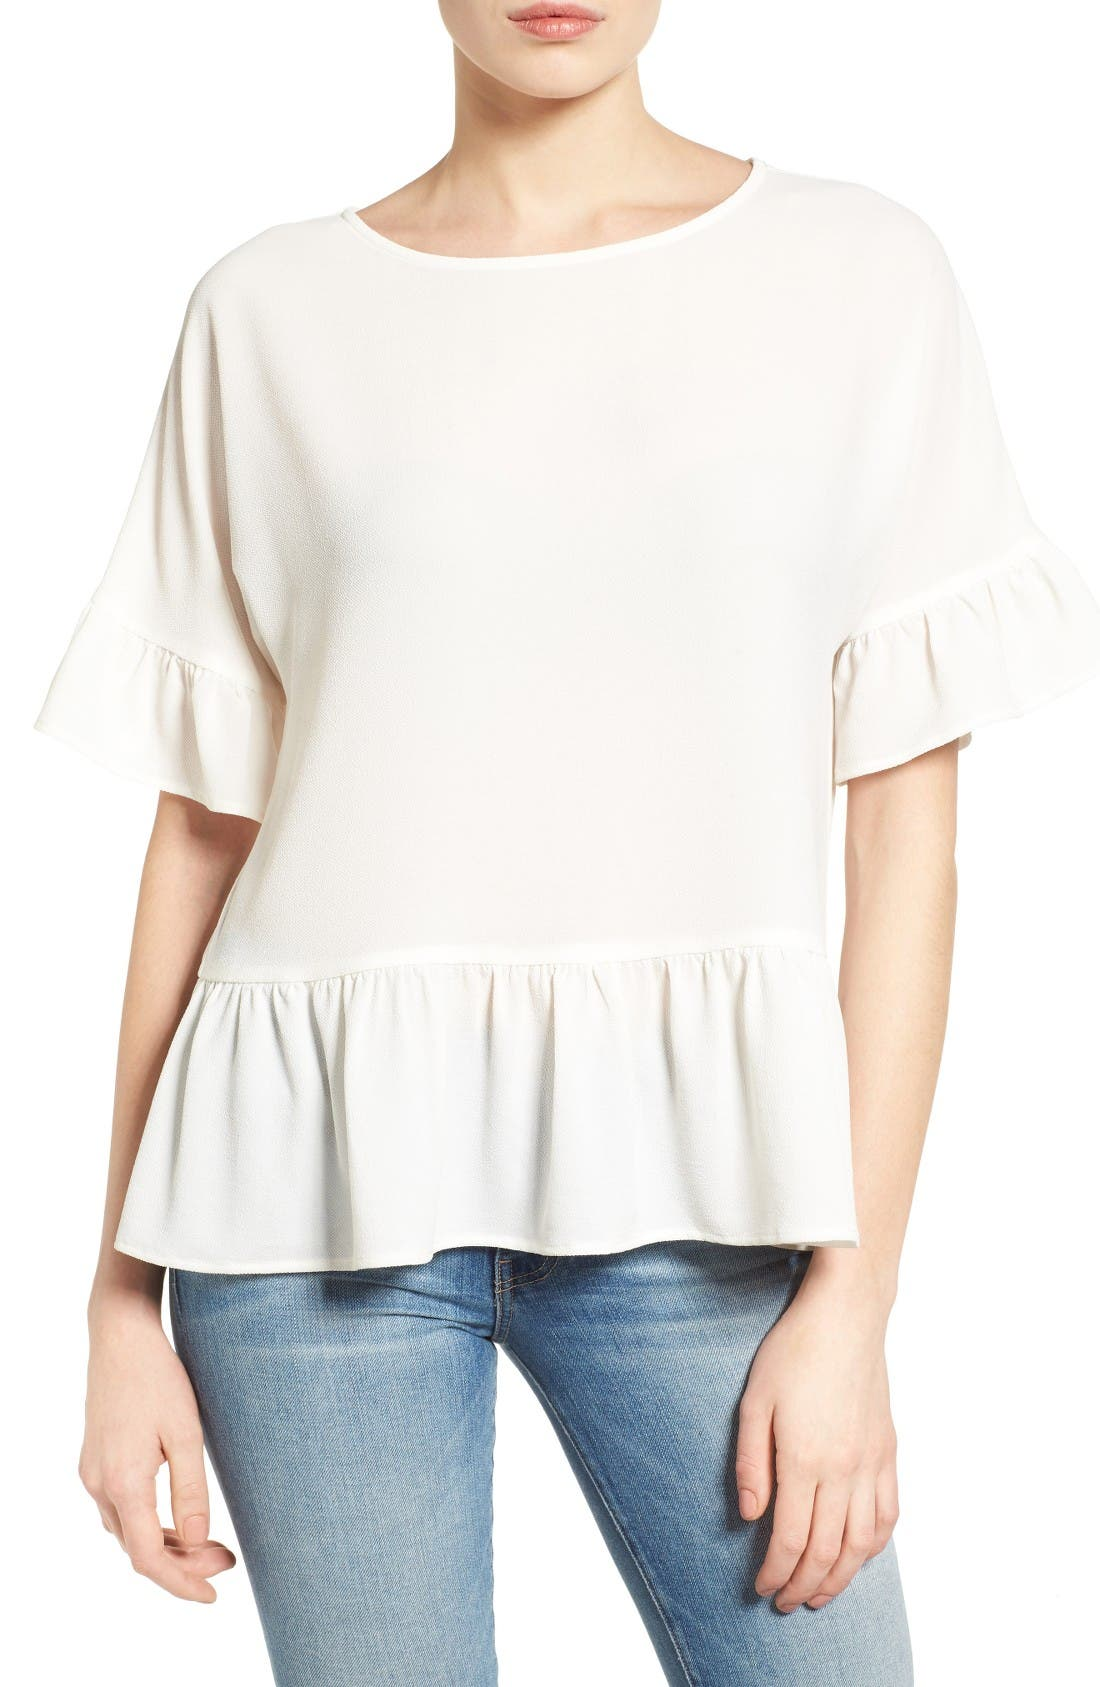 Alternate Image 1 Selected - Gibson Ruffle Hem Top (Regular & Petite)